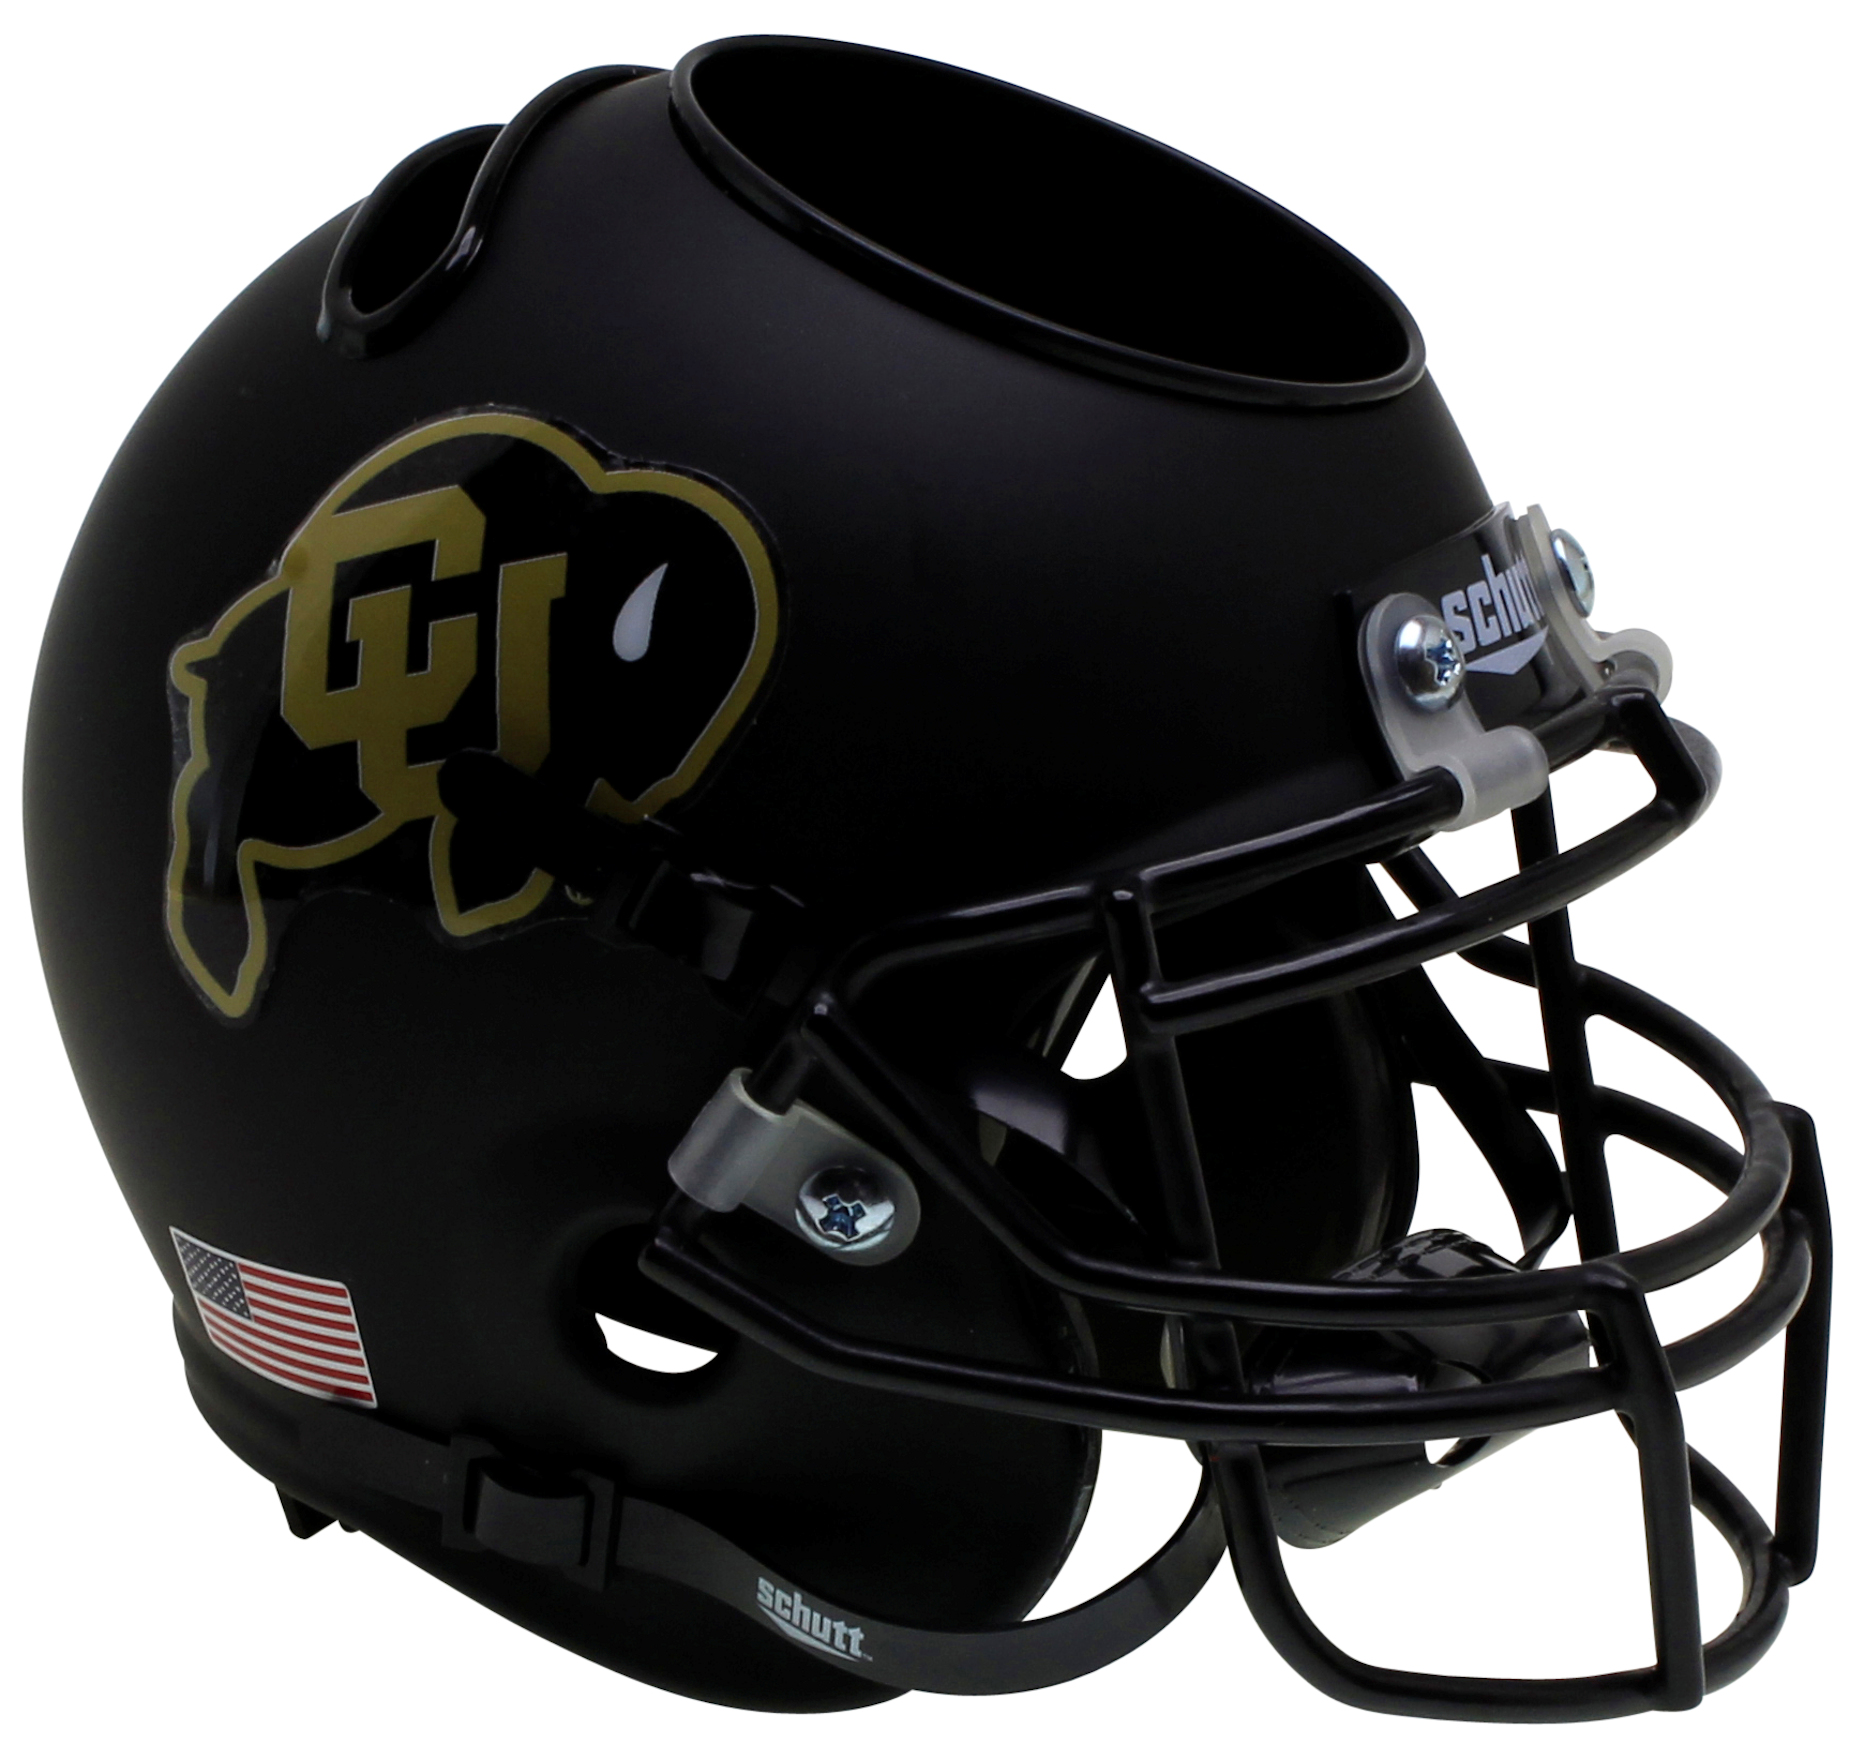 Colorado Buffaloes Miniature Football Helmet Desk Caddy <B>Black</B>